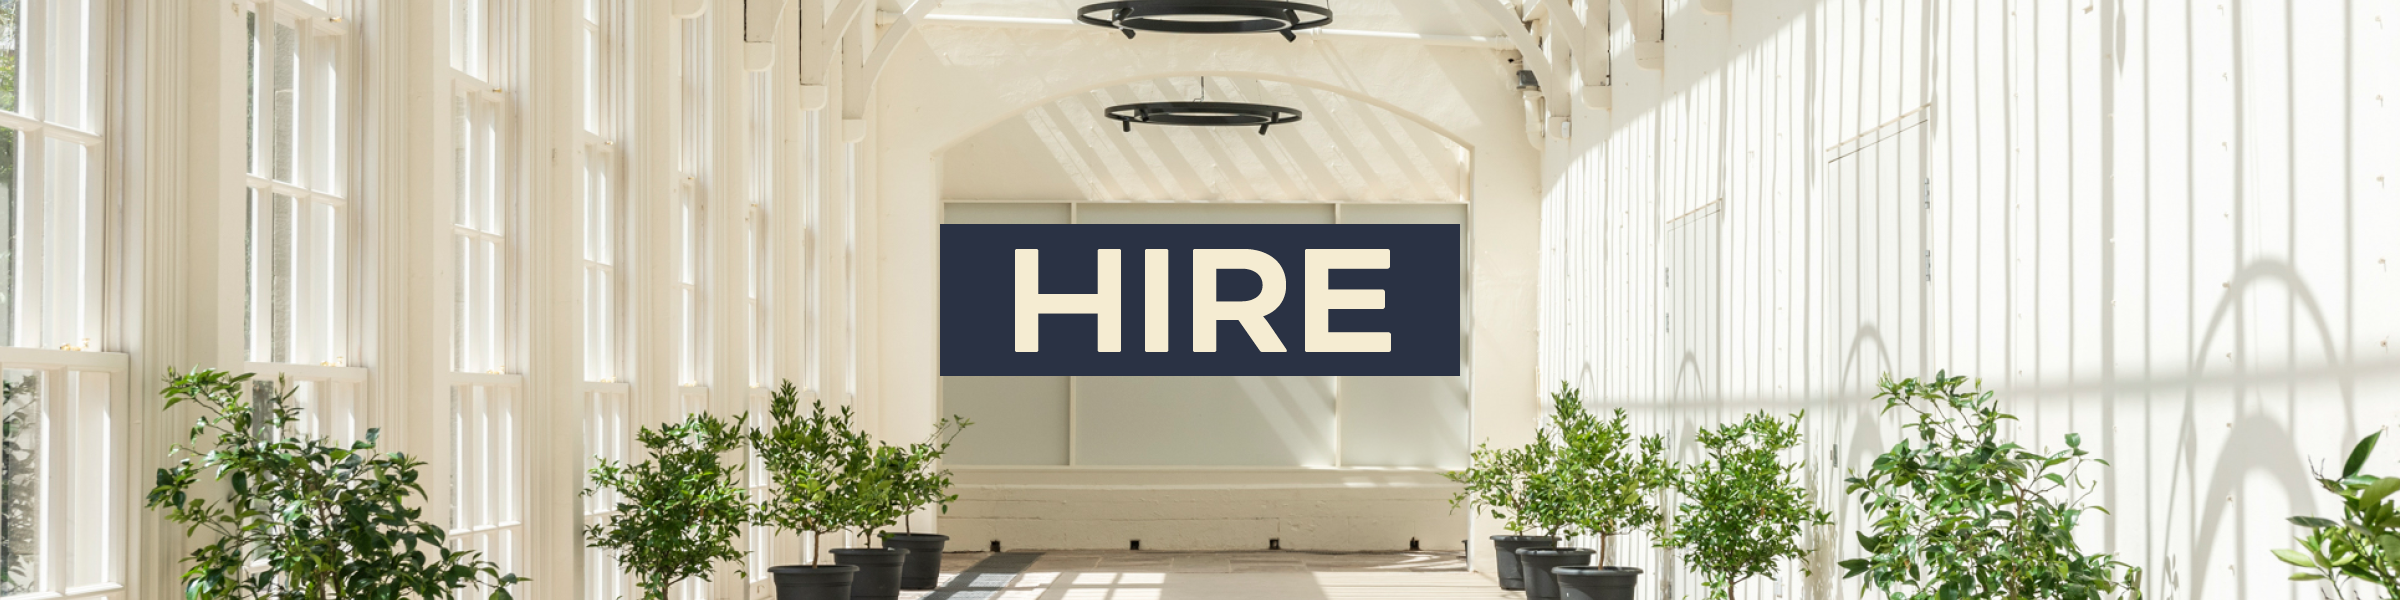 Hire Ingestry Orangery - click for more details